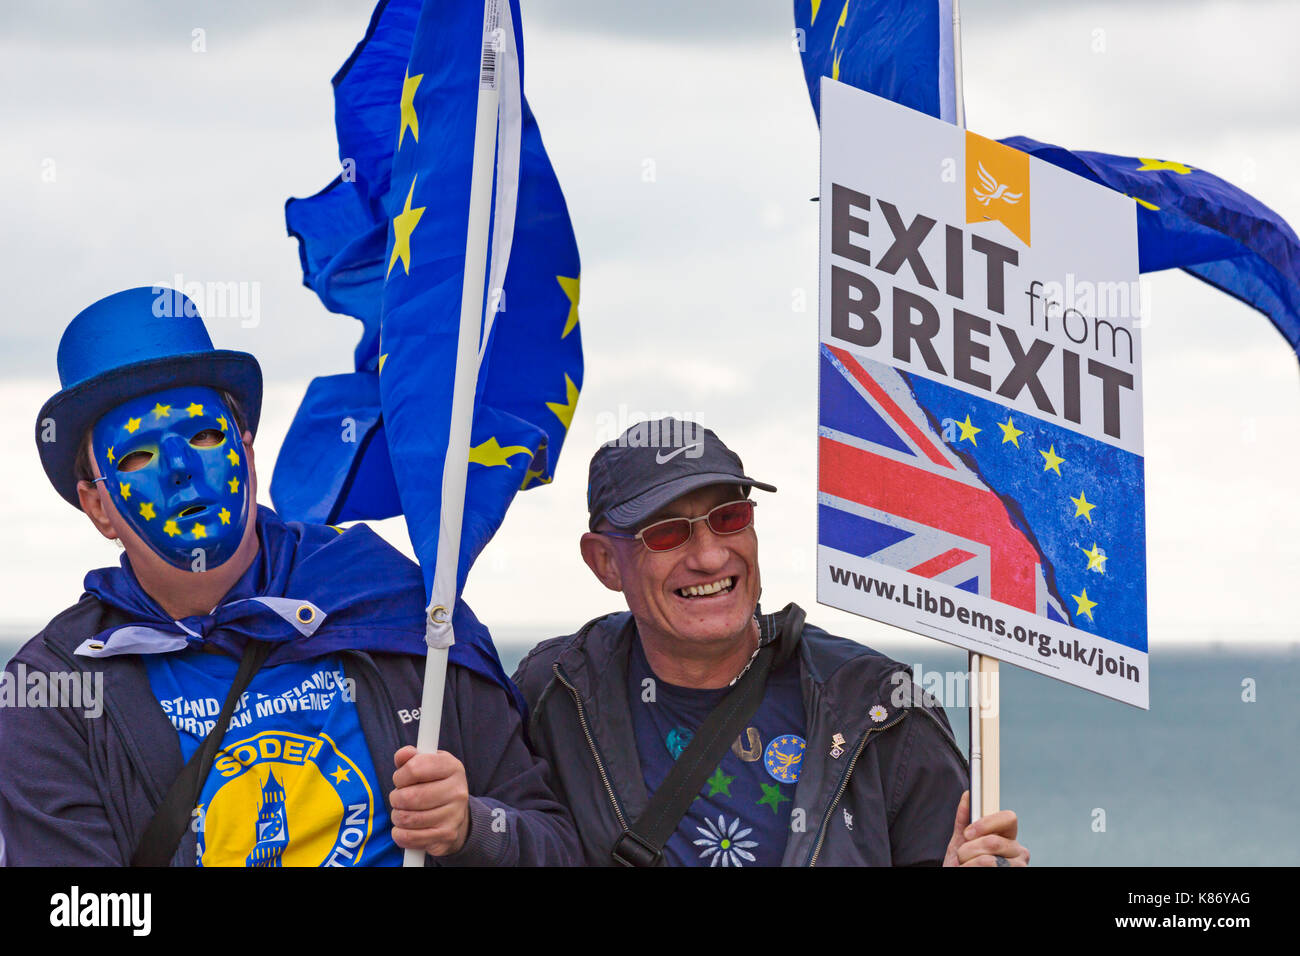 EU supporters holding EU flags and Exit from Brexit placard at Stop Brexit Demonstration at Bournemouth, Dorset - Stock Image